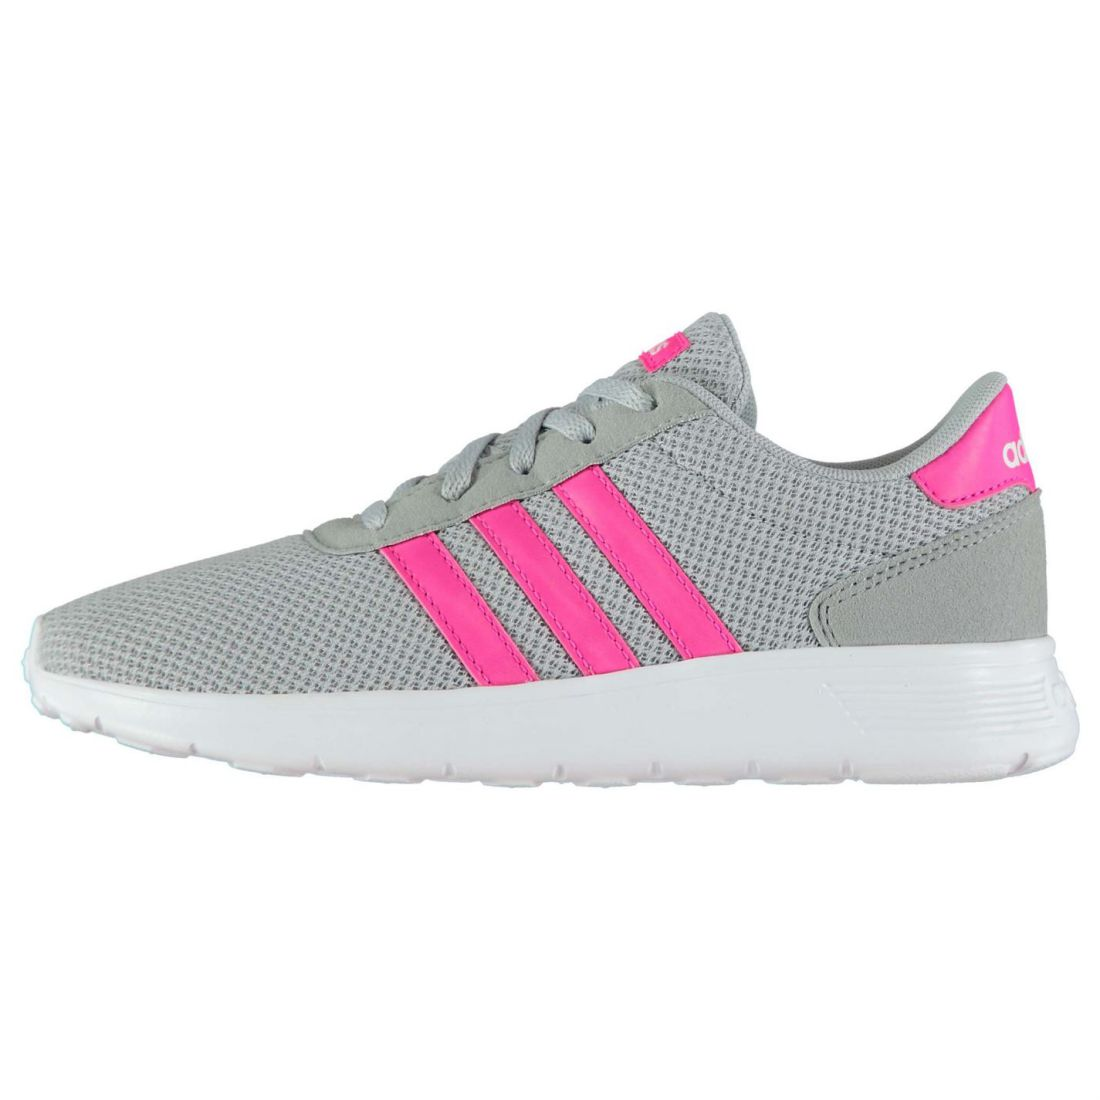 63721c1e657 adidas Kids Girls Lite Racer Child Trainers Runners Lace Up Casual ...